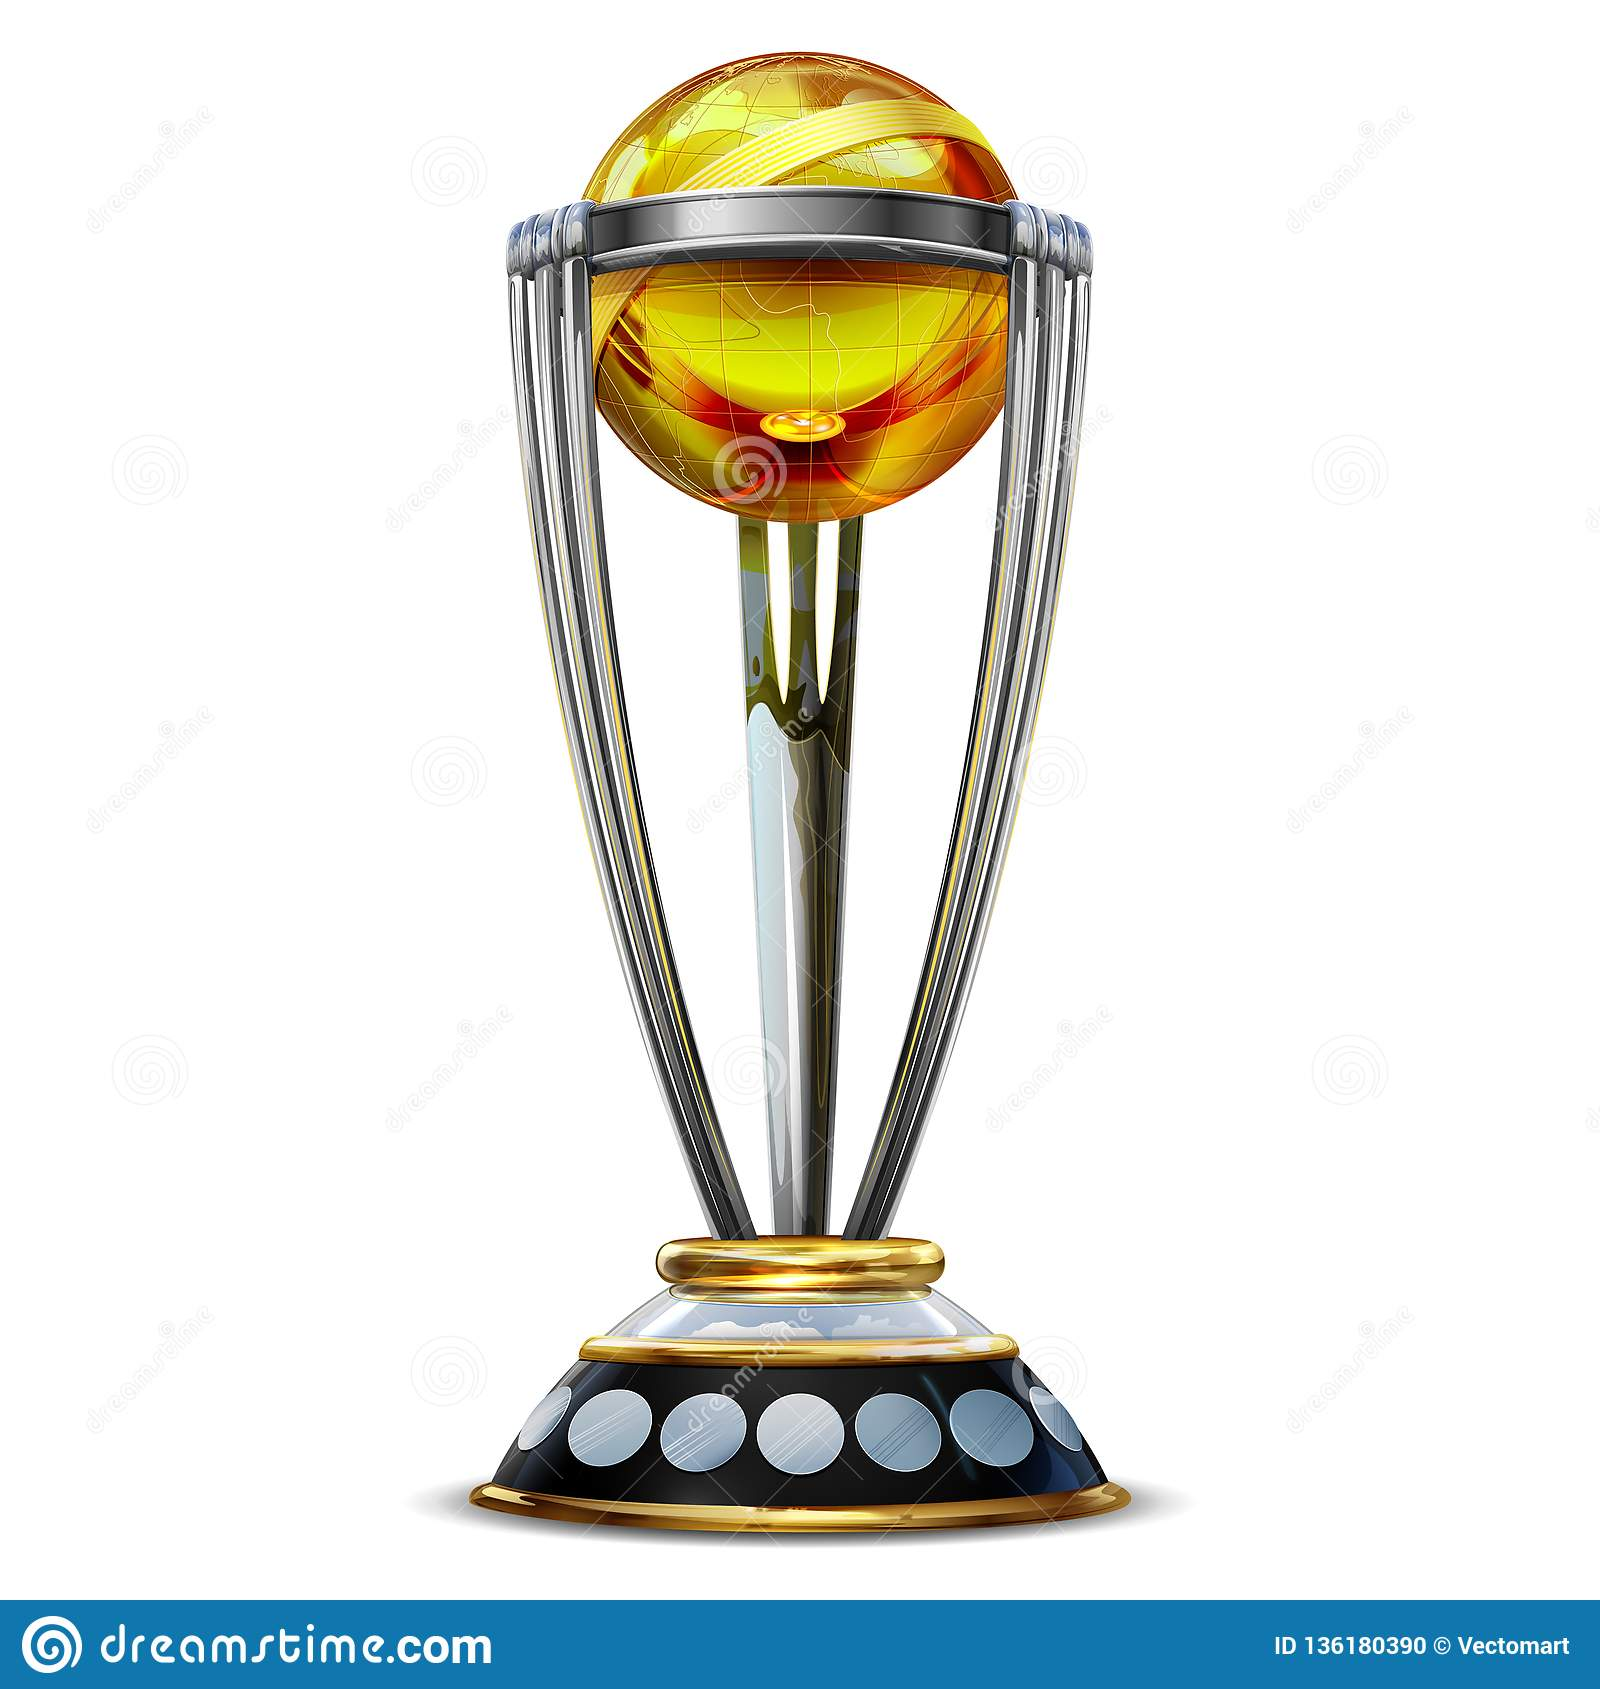 illustration of realistic cricket world cup trophy on plain background